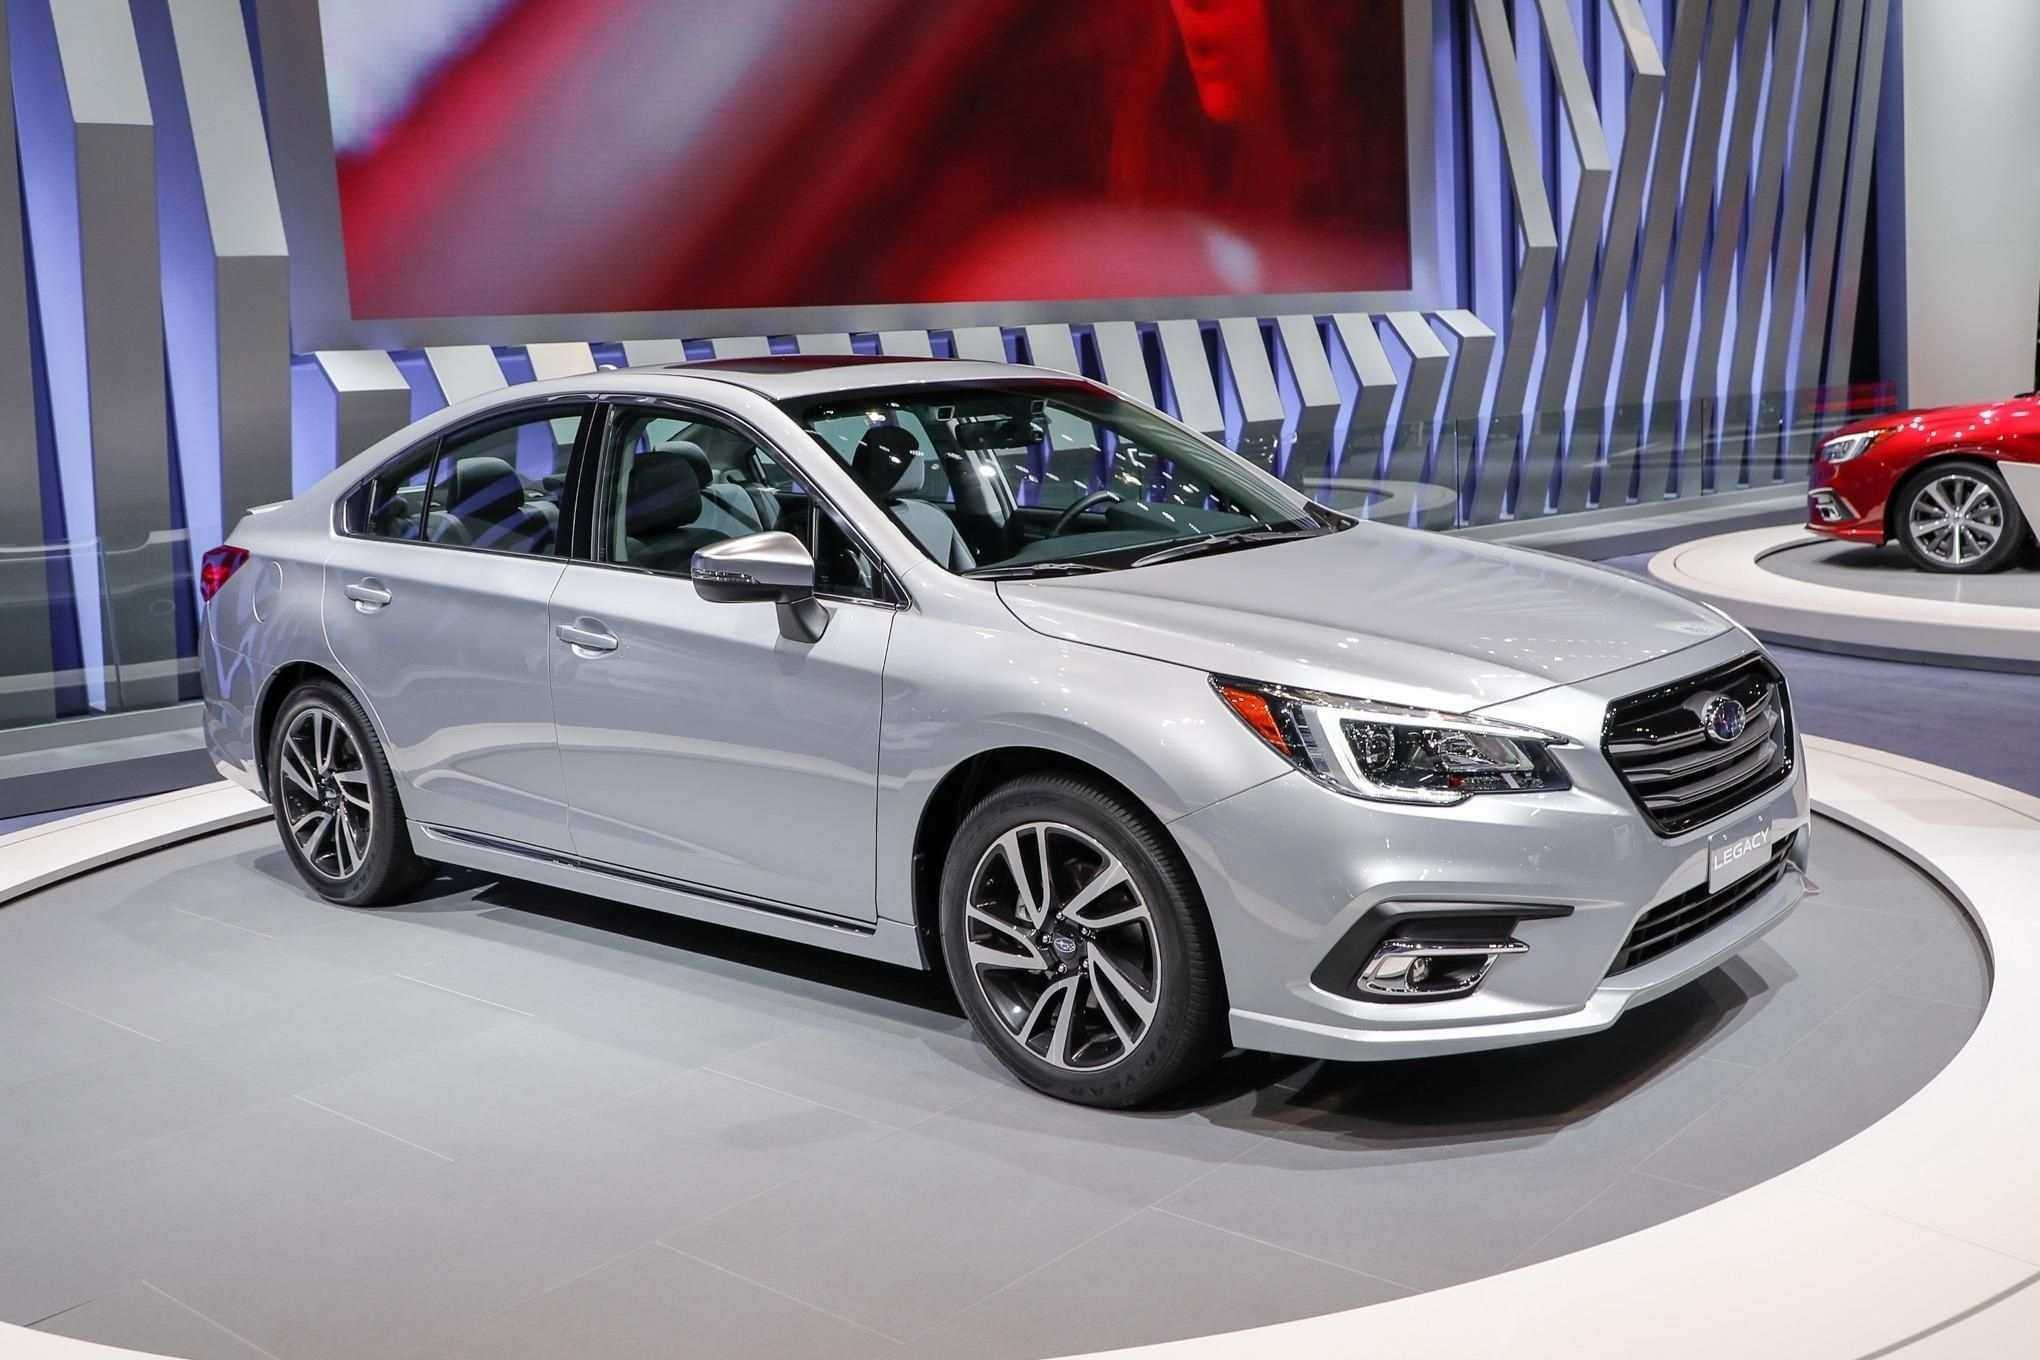 97 The Subaru Legacy Gt 2019 New Review